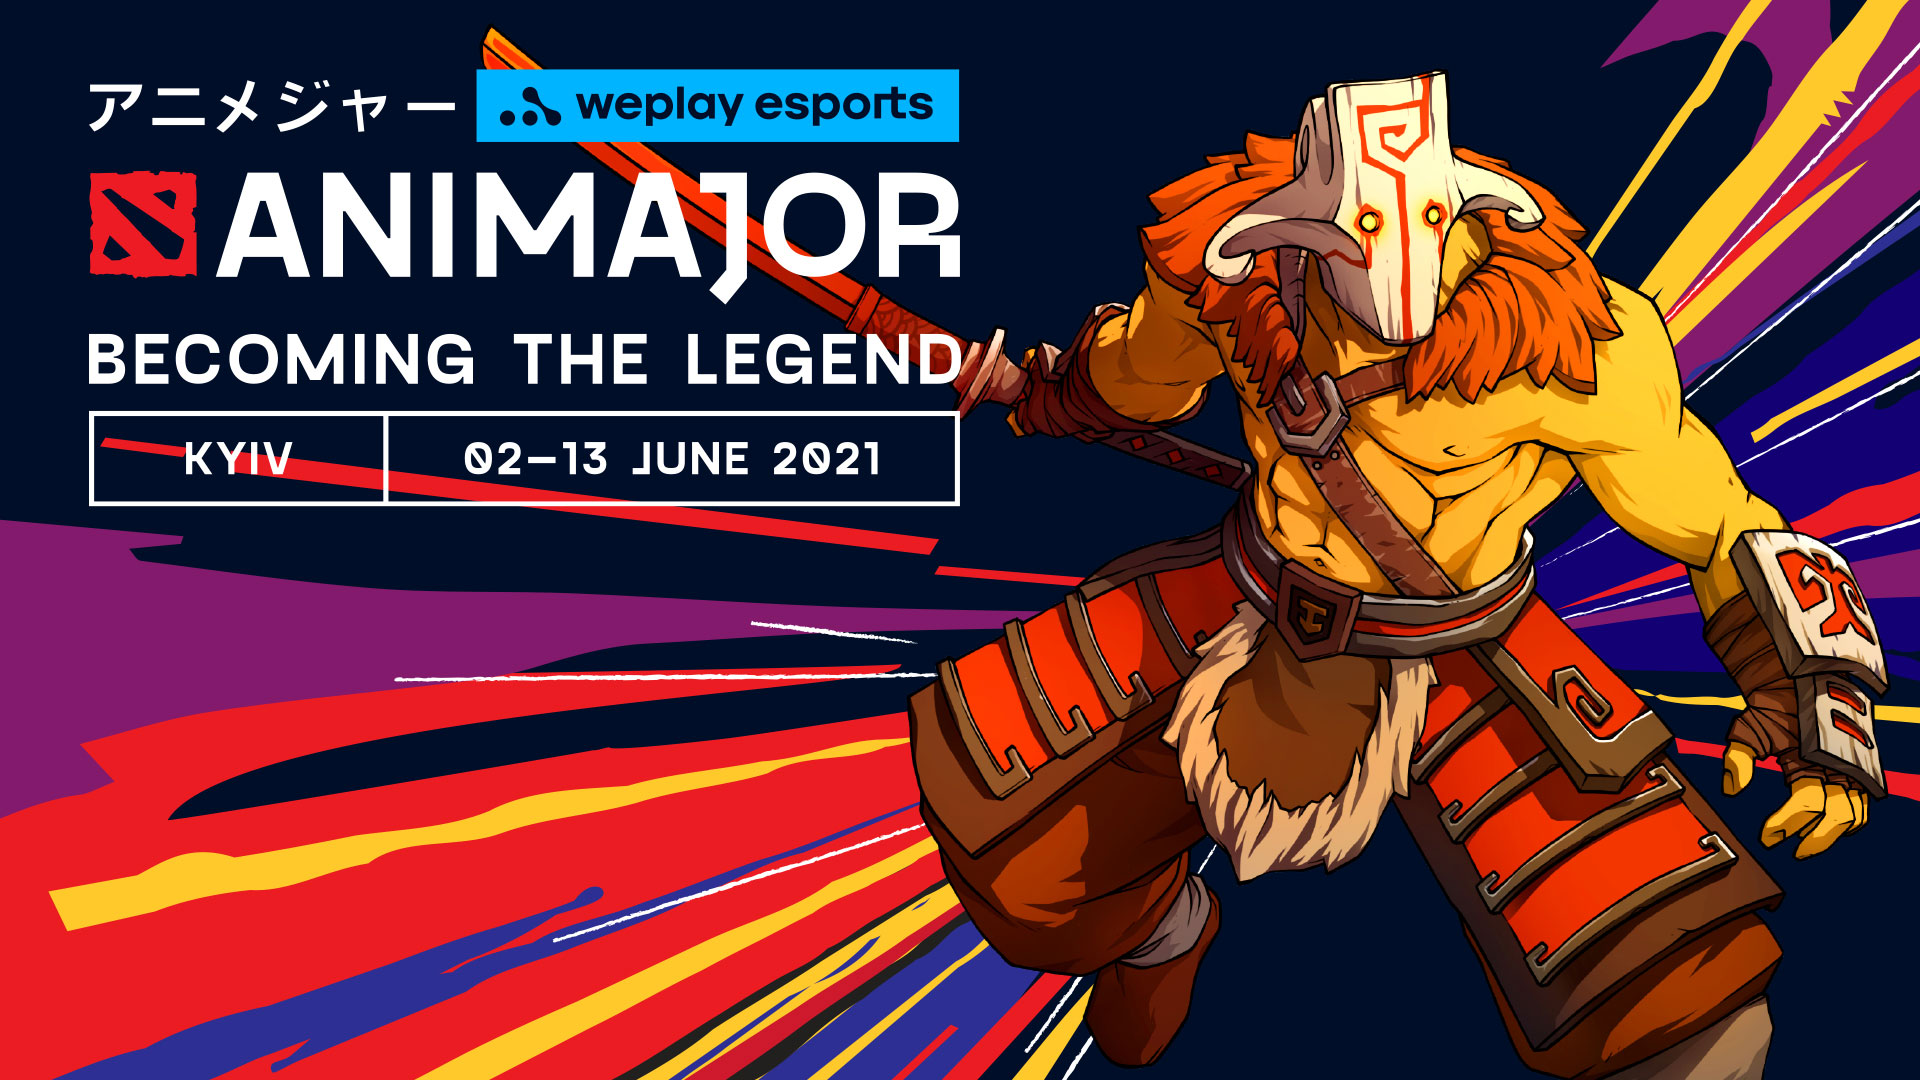 A Closer Look at the Teams Heading to WePlay AniMajor